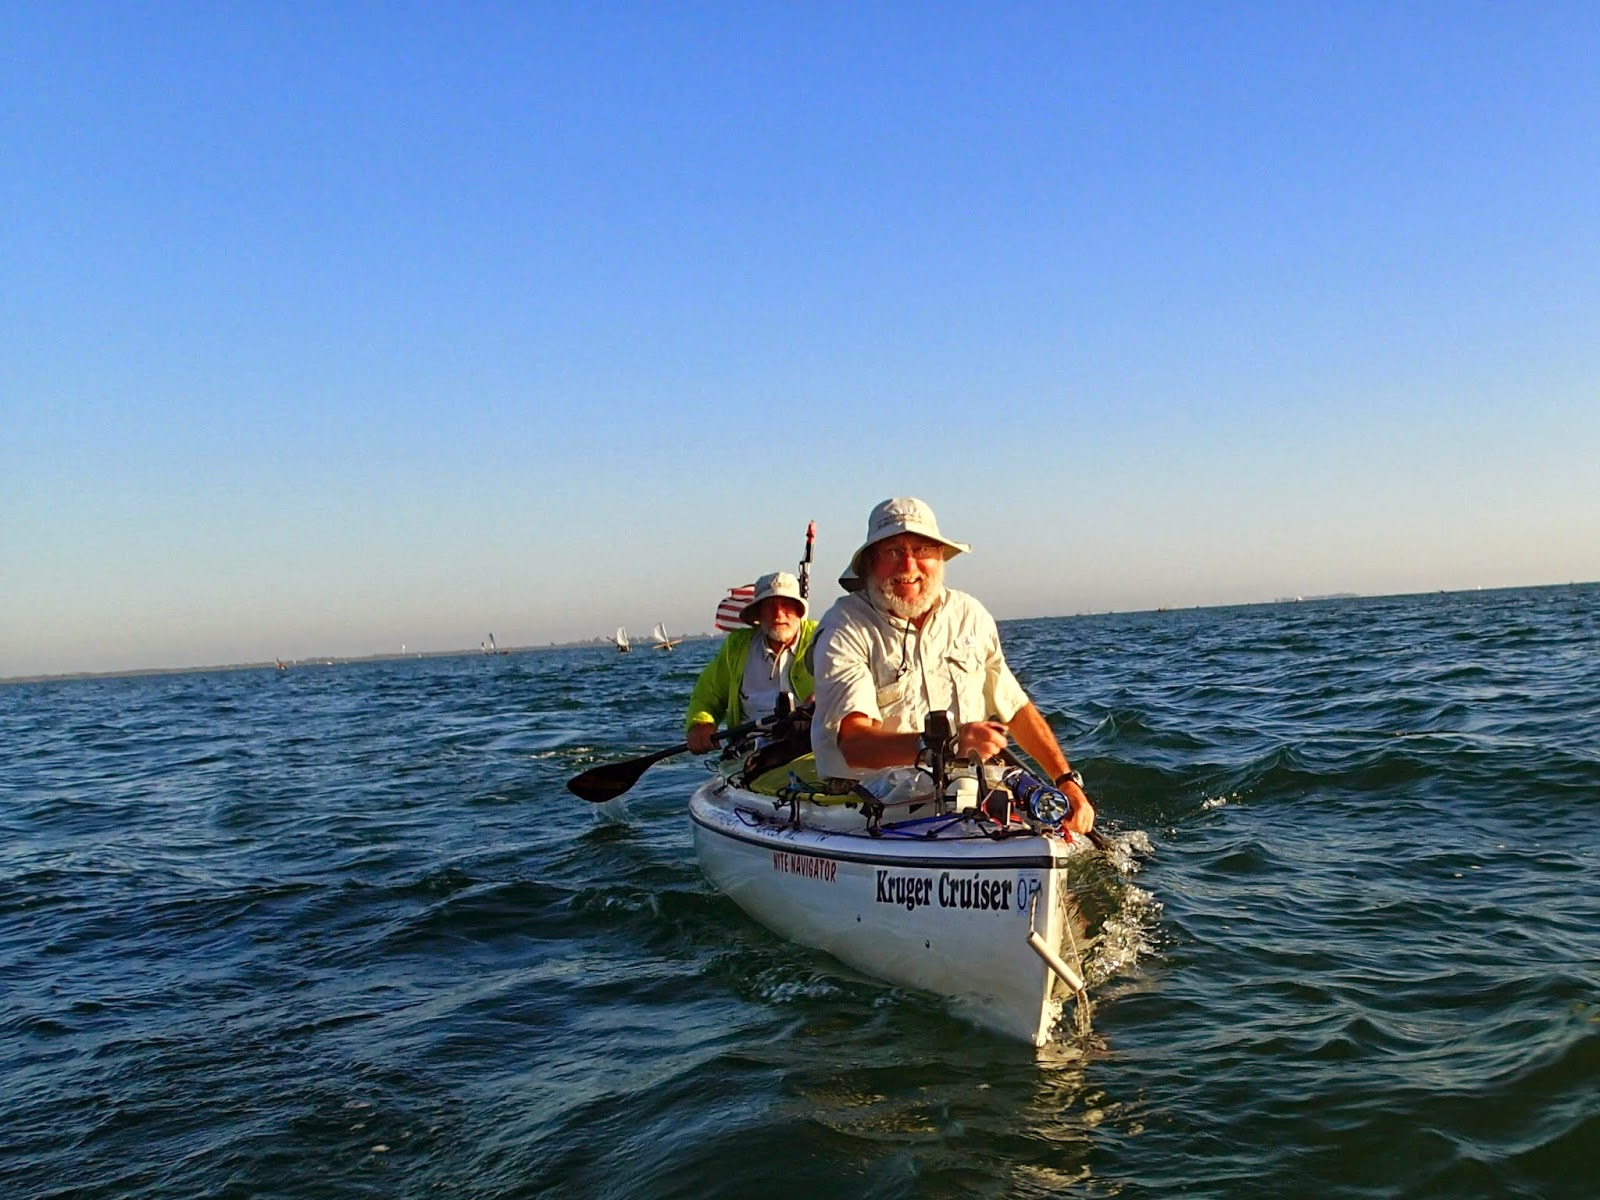 Everglades challenge 2014 day 1 lm small craft coastal day 1 fort desoto to hoagen key 69 miles nvjuhfo Images